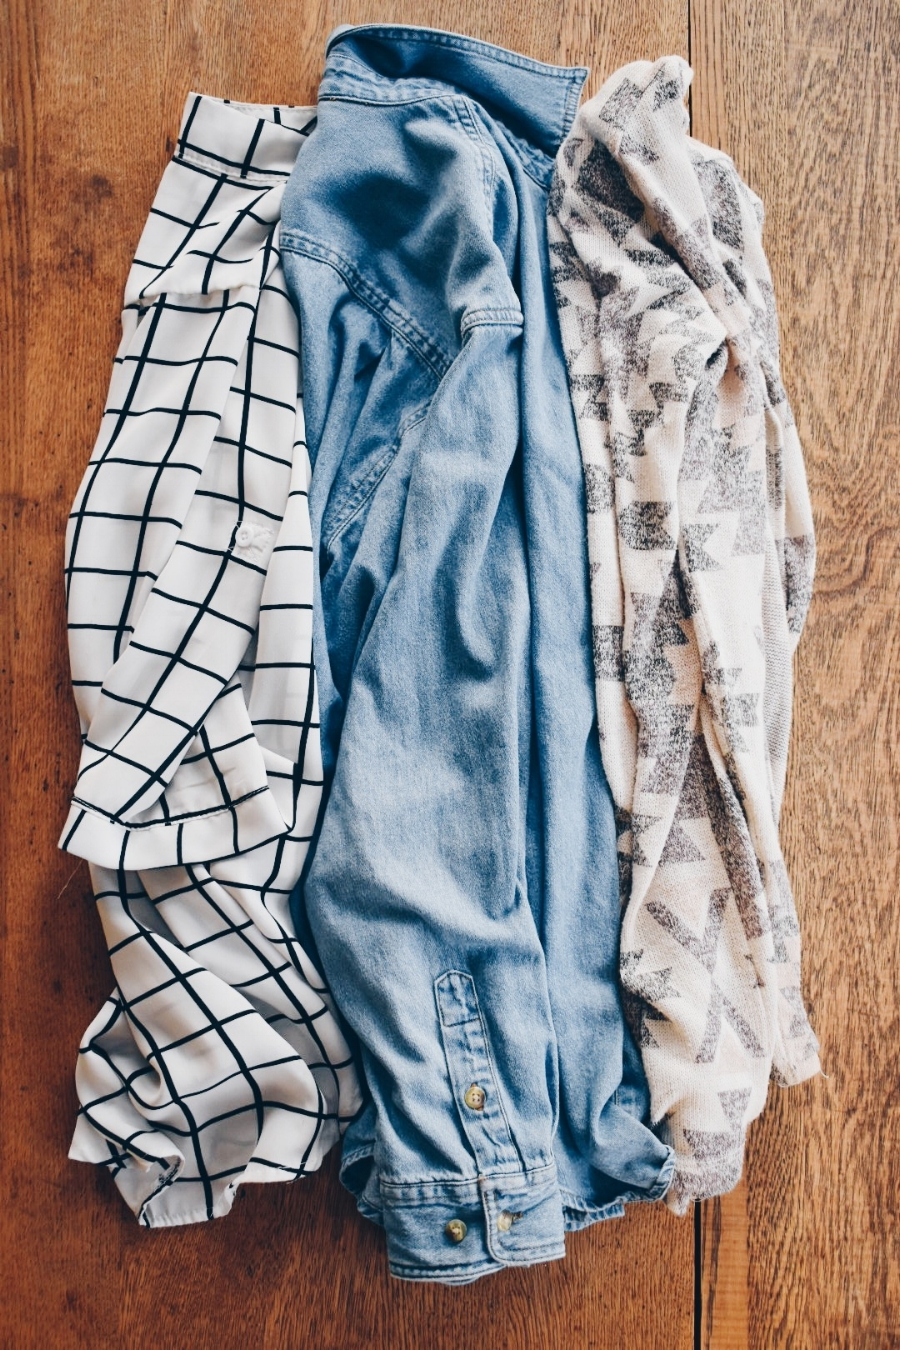 OMC - Deep Cleaning Your Closet